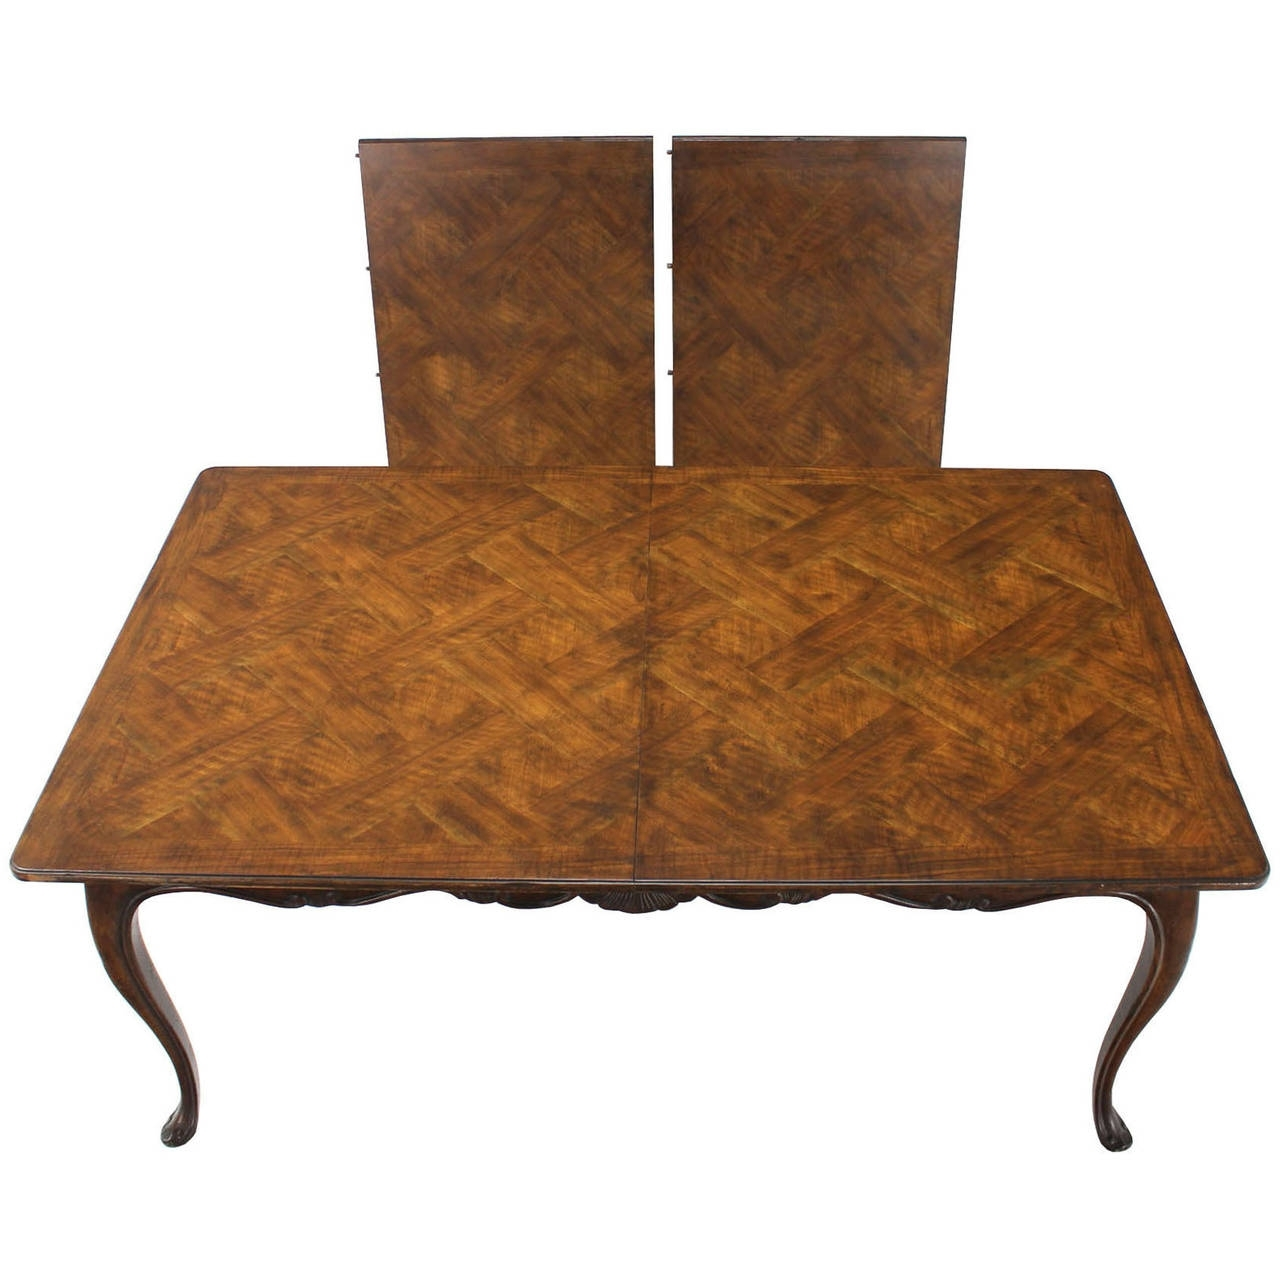 Preferred Burwood Walnut Dining Tableheritage W/ One Extension Leaf With Regard To Parquet Dining Tables (View 20 of 25)